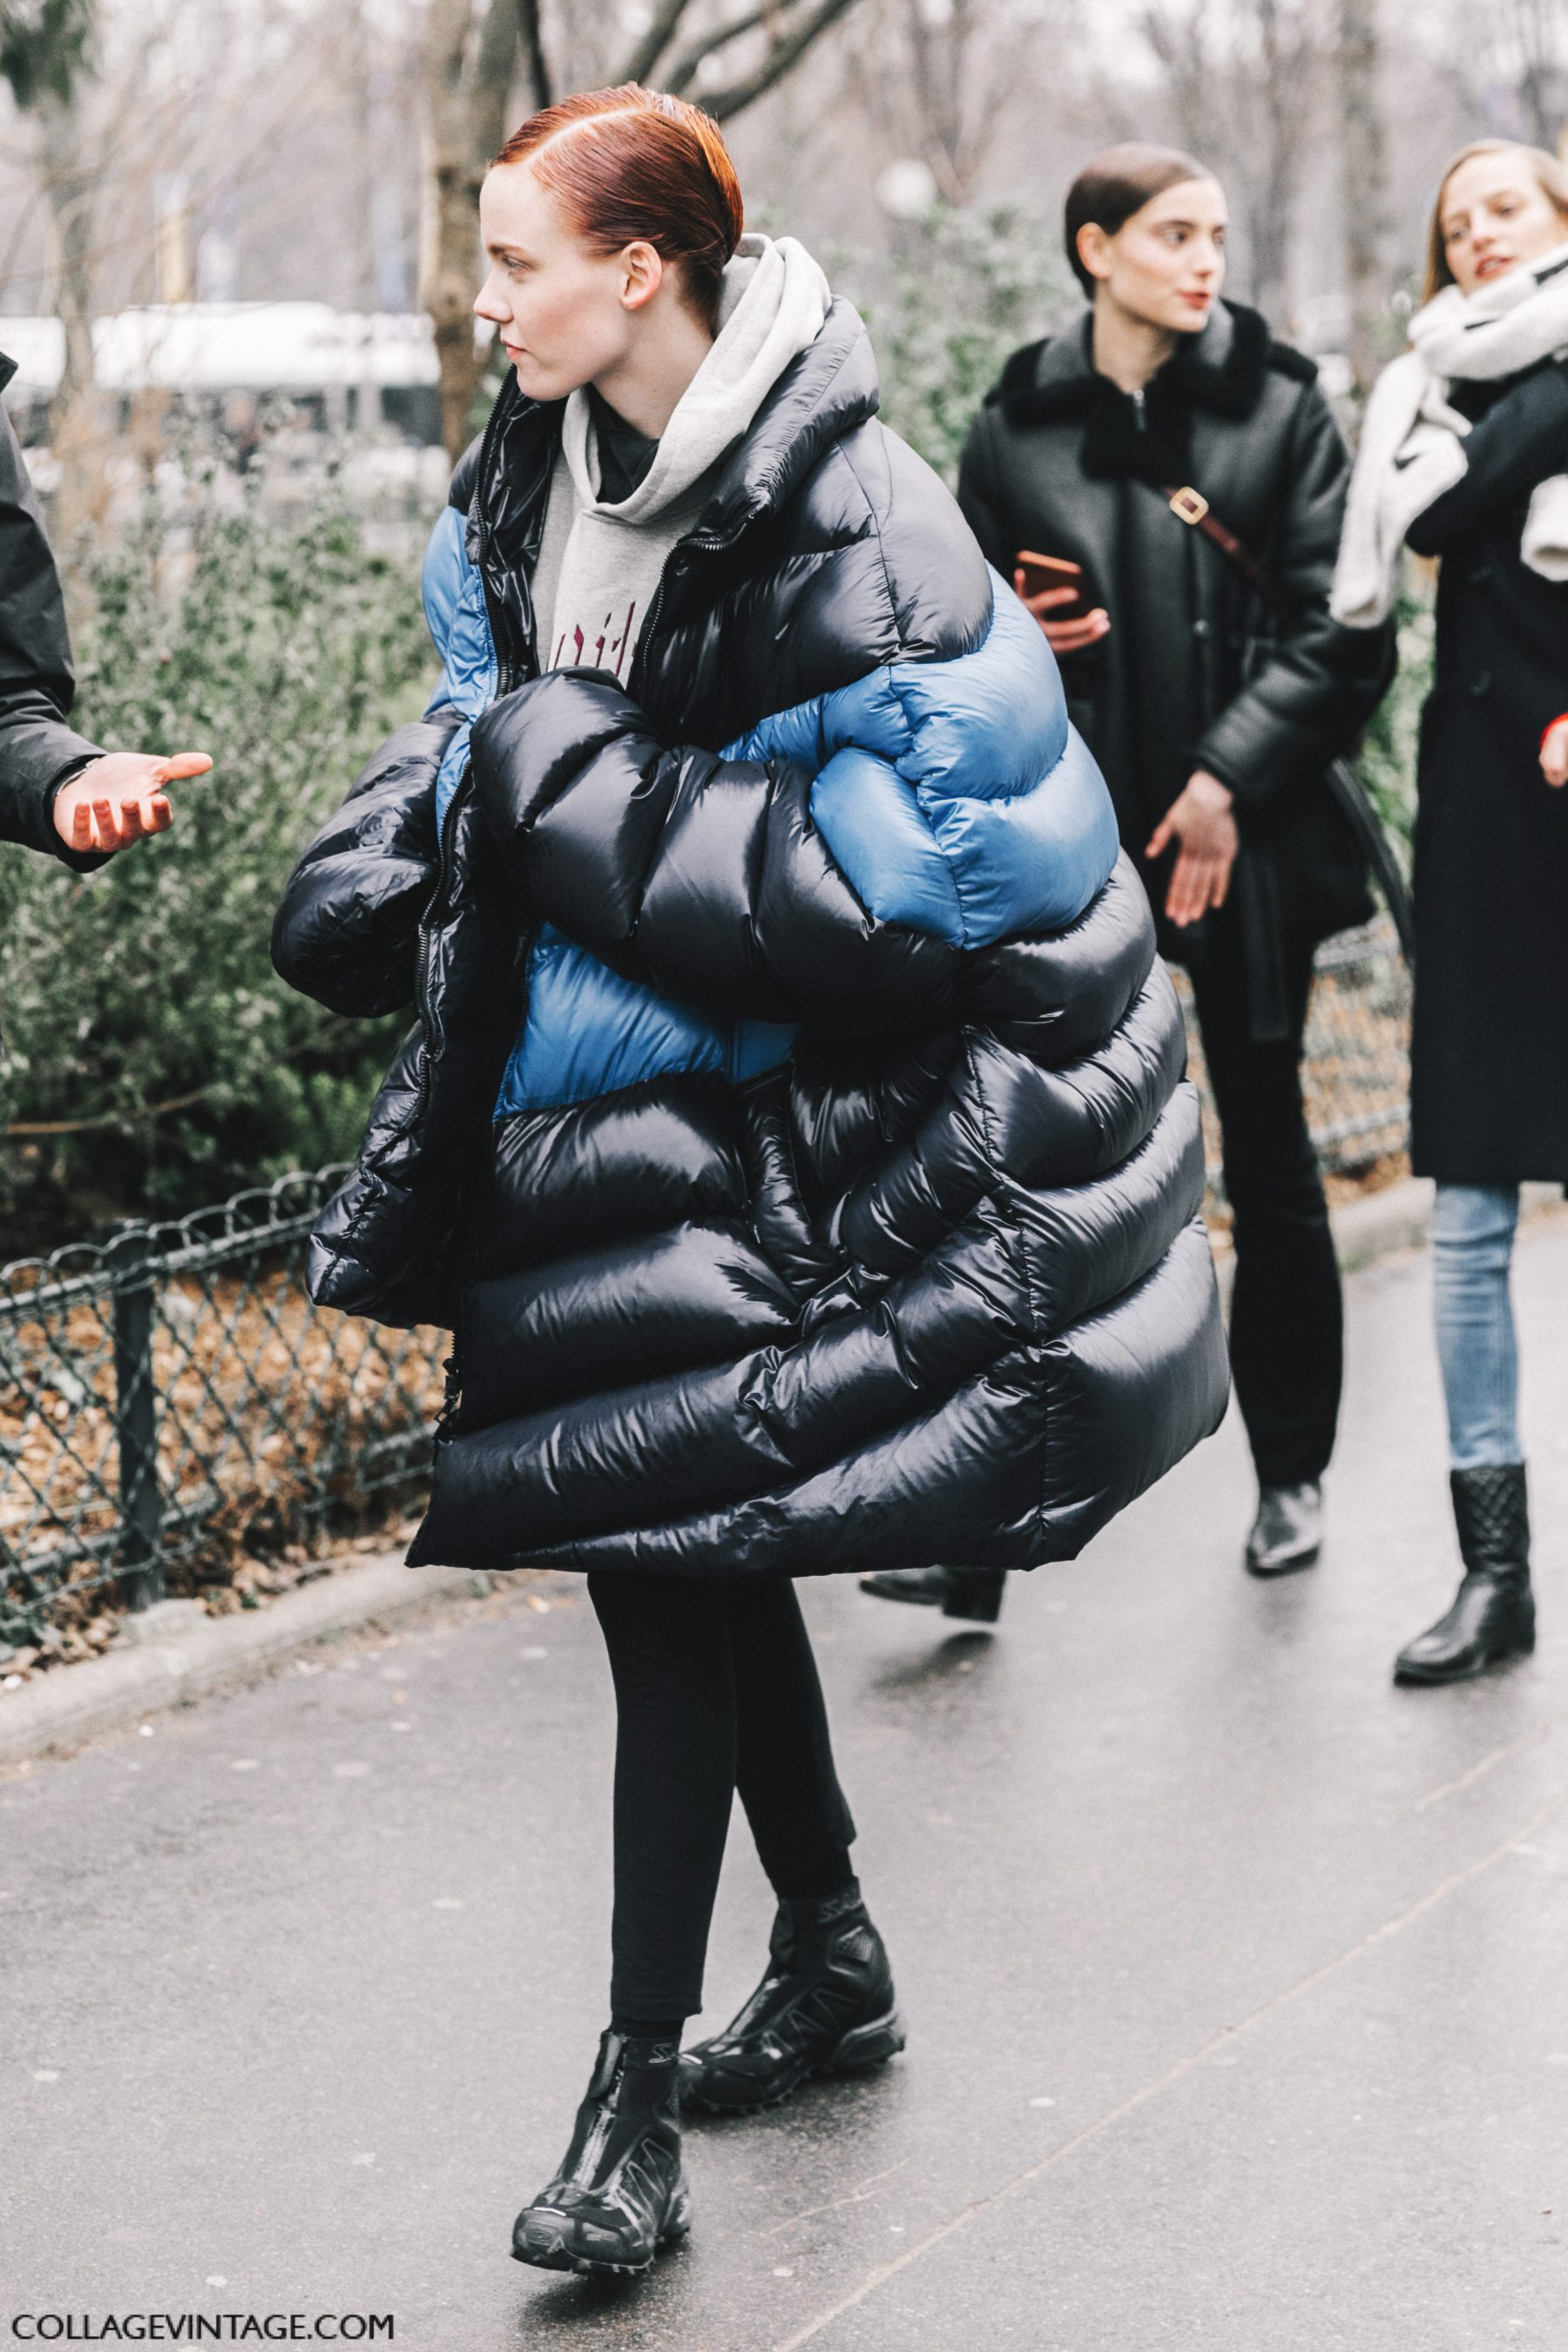 Couture_Paris_Fashion_Week-PFW-Street_Style-Chanel-Vetements-Outfit-Collage_Vintage-172-1800x2700